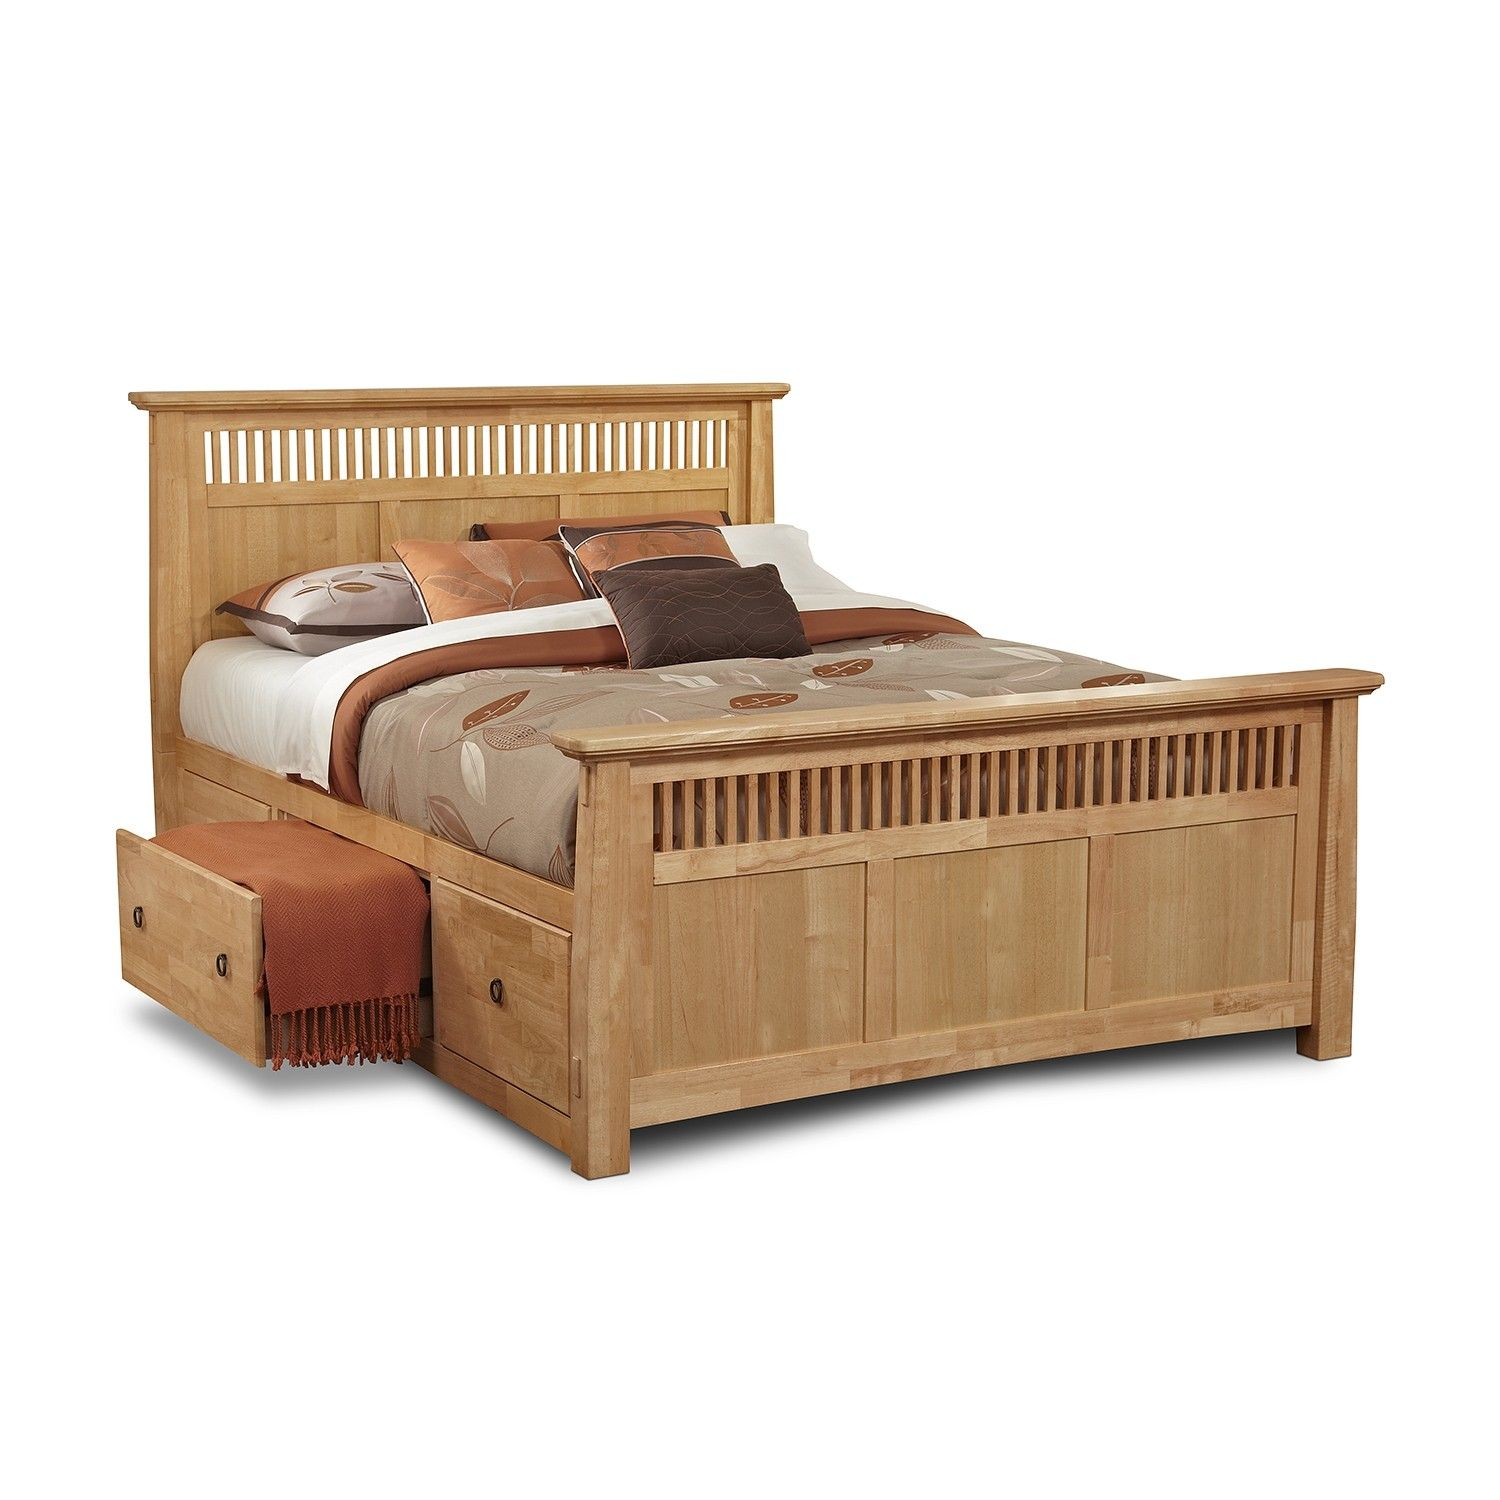 Storage Bed Frame Queen Not A Buying Site Queen Size Bed Frame With Storage